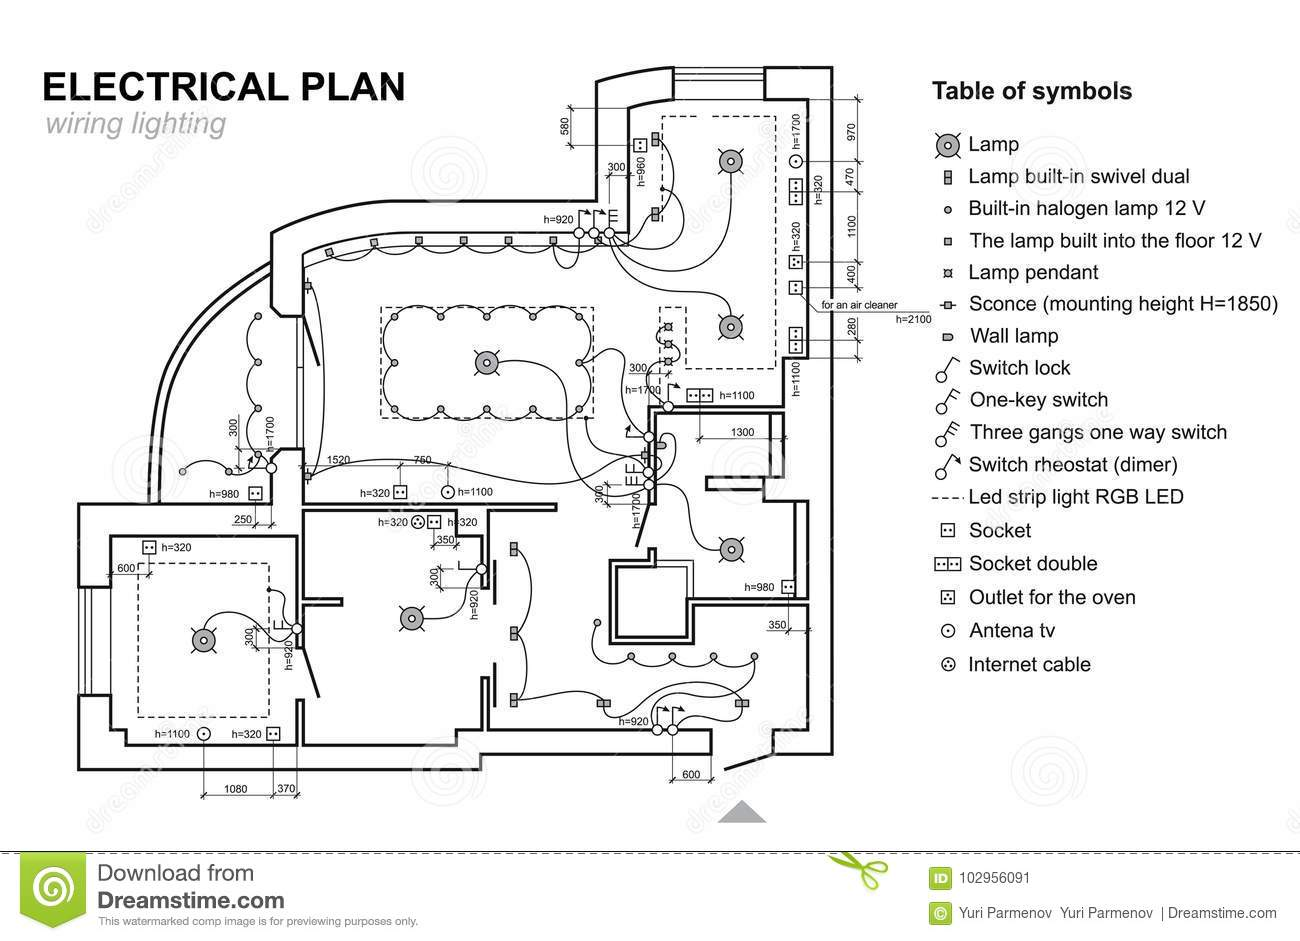 Plan Wiring Lighting. Electrical Schematic Interior. Set